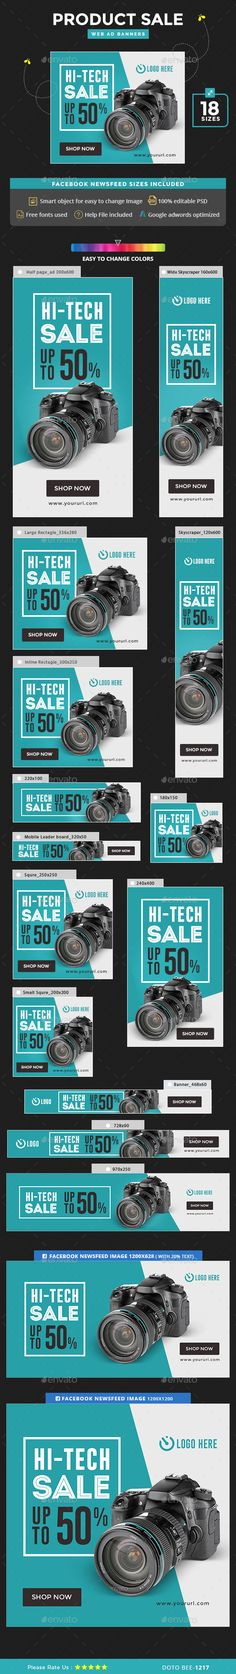 Product Sale Banners Template PSD. Download here: http://graphicriver.net/item/product-sale-banners/15336087?ref=ksioks